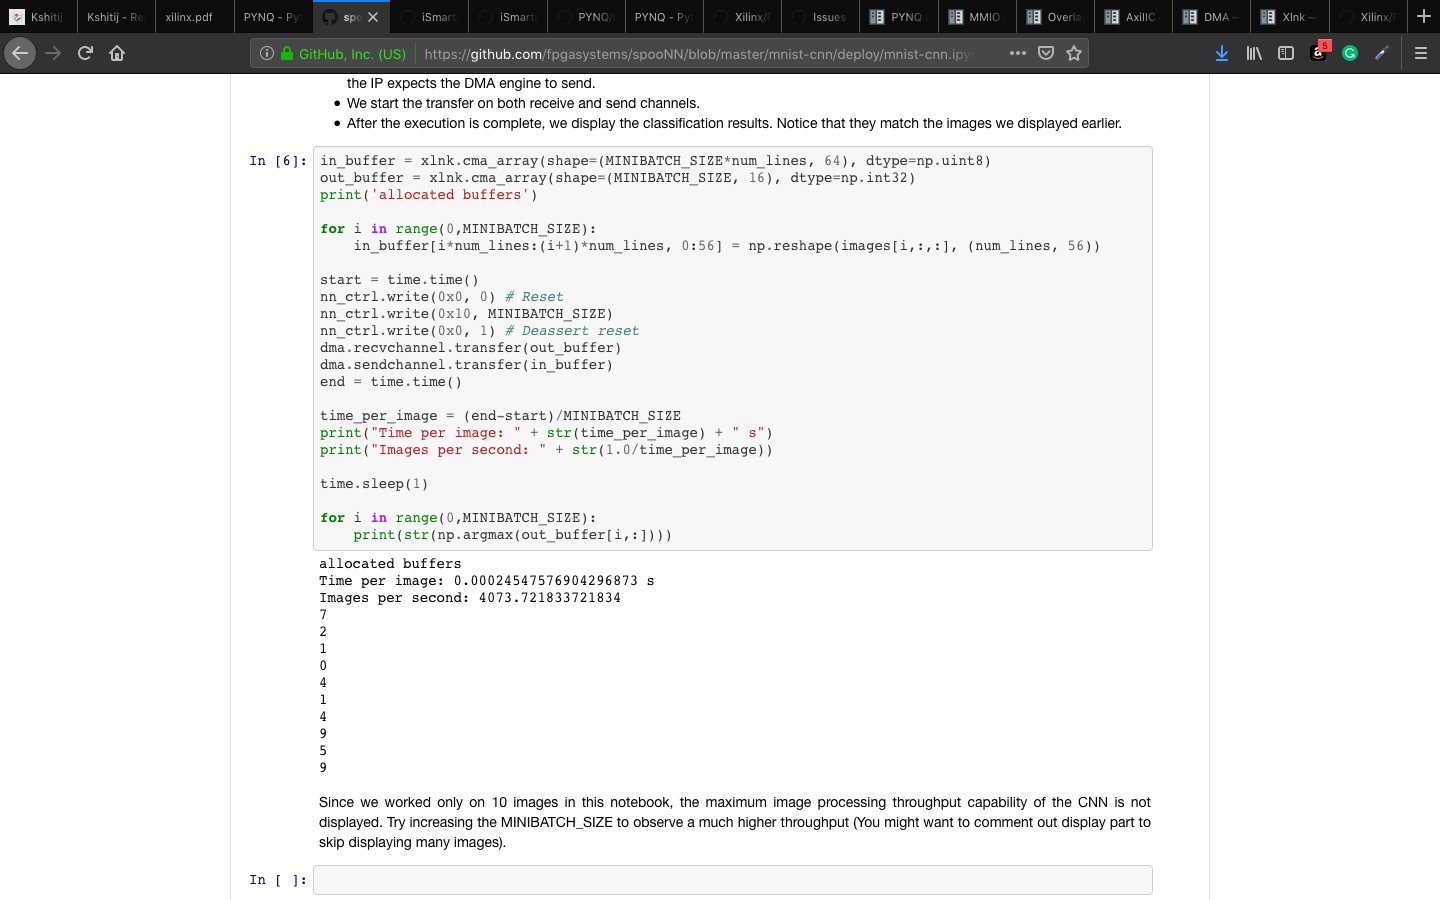 Need some explaination for this patch of code · Issue #2